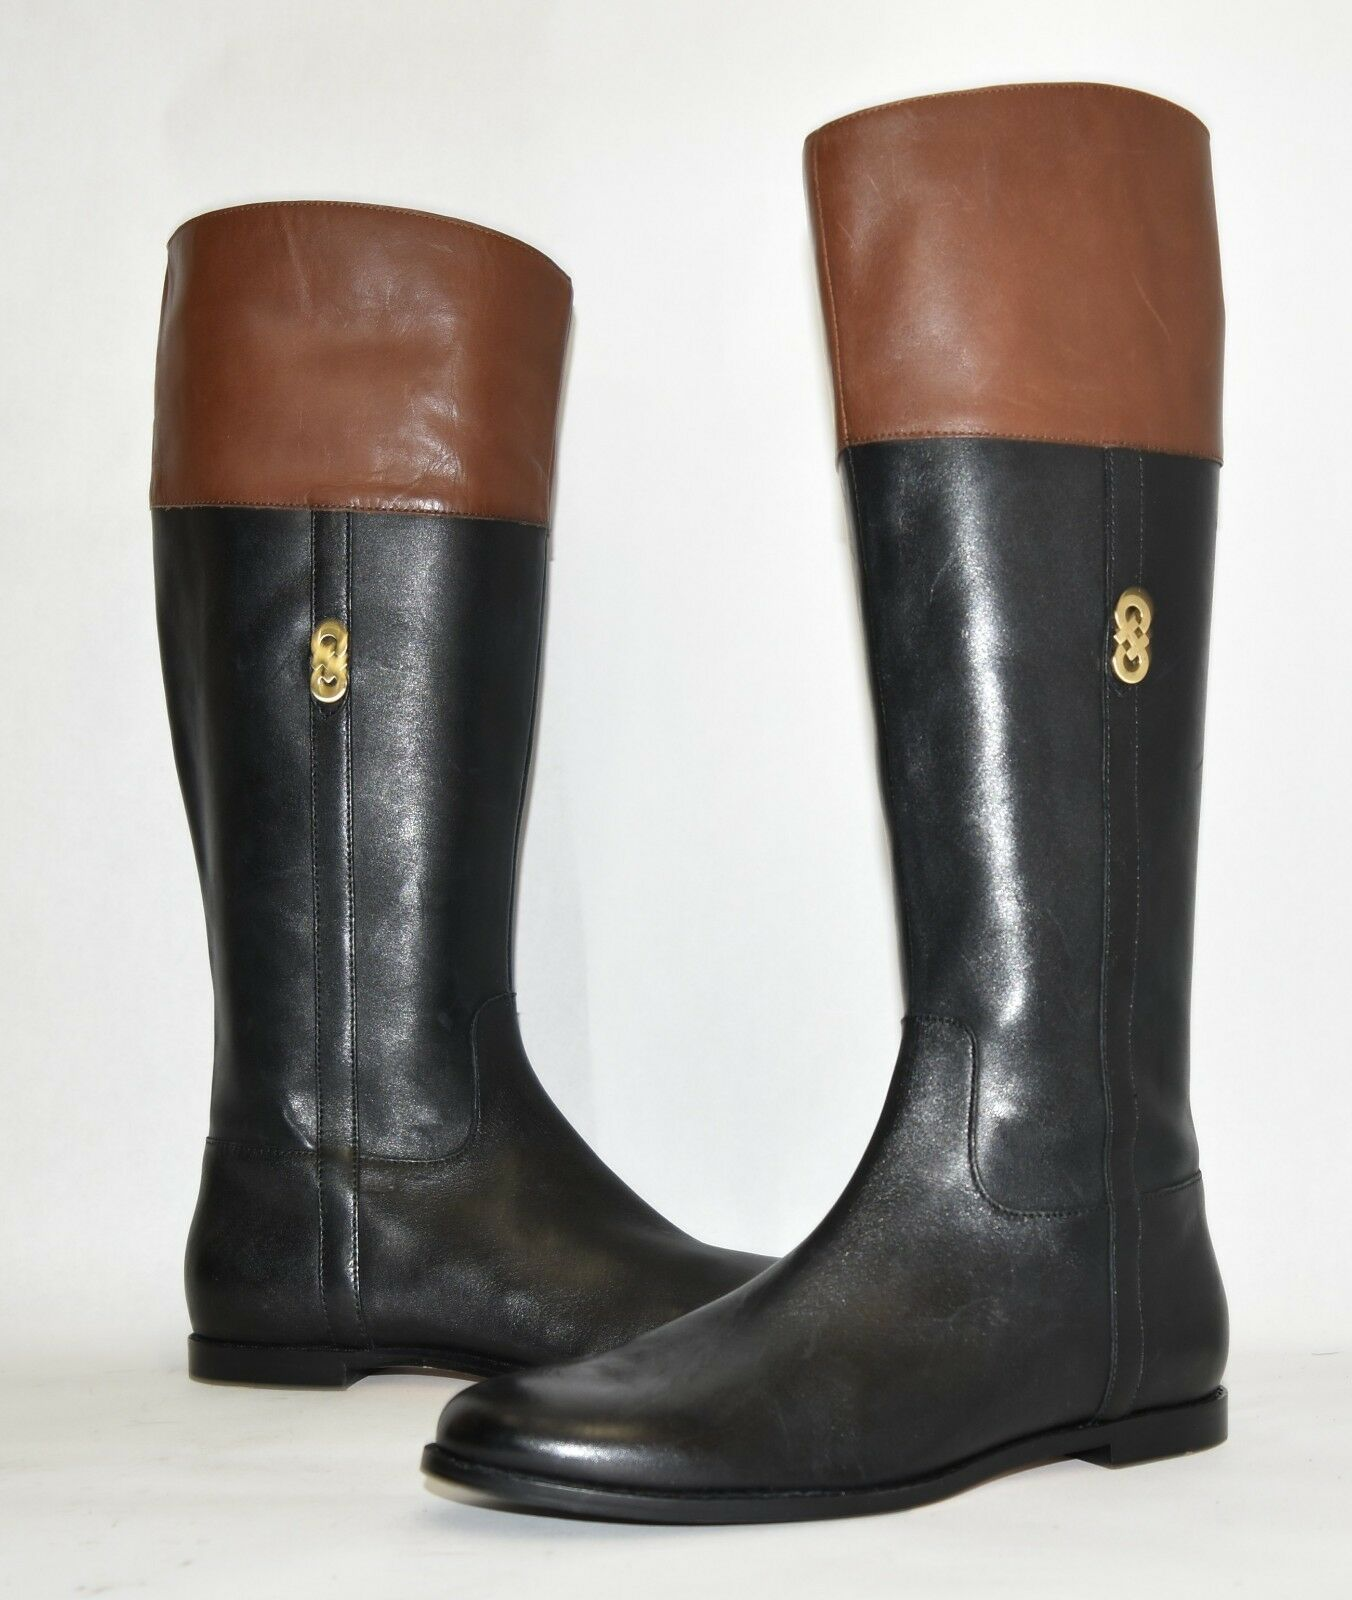 New! Cole Haan Rigby Riding Boot II Black Leather Size 7.5 MSRP $308 W00609